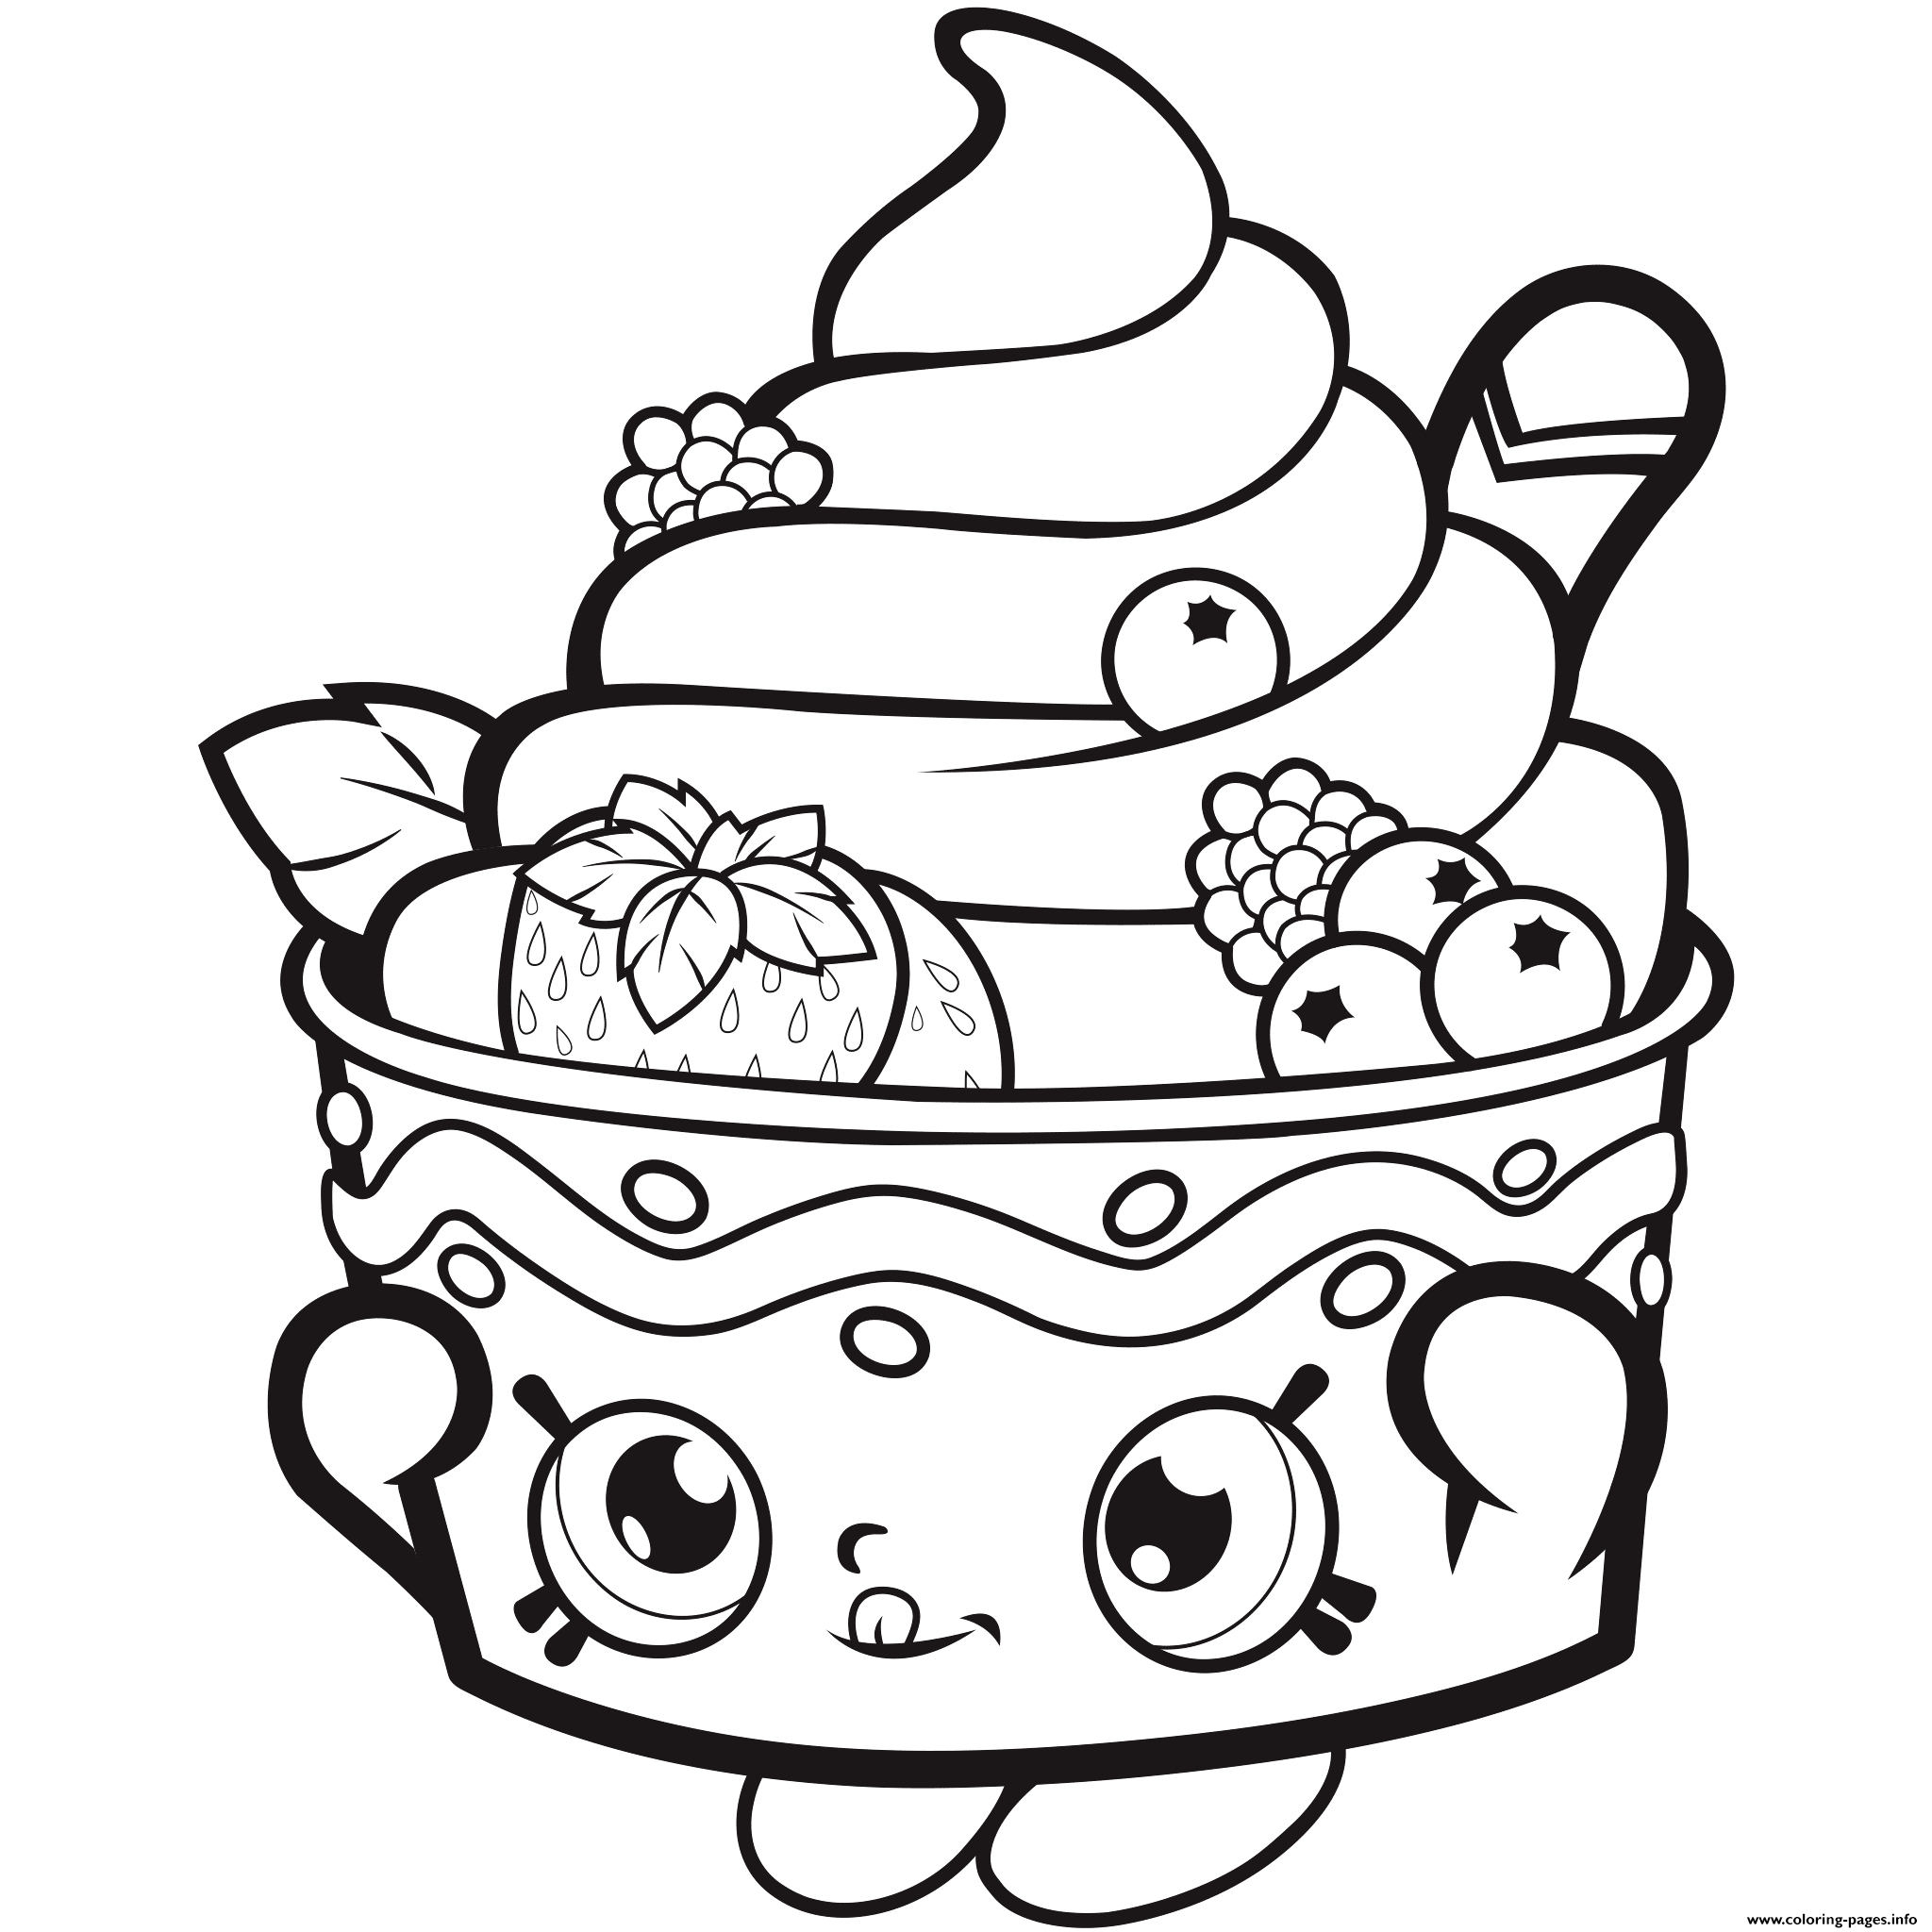 2048x2048 Best Of Shopkins Coloring Pages Free Printable Lippy Lips Download